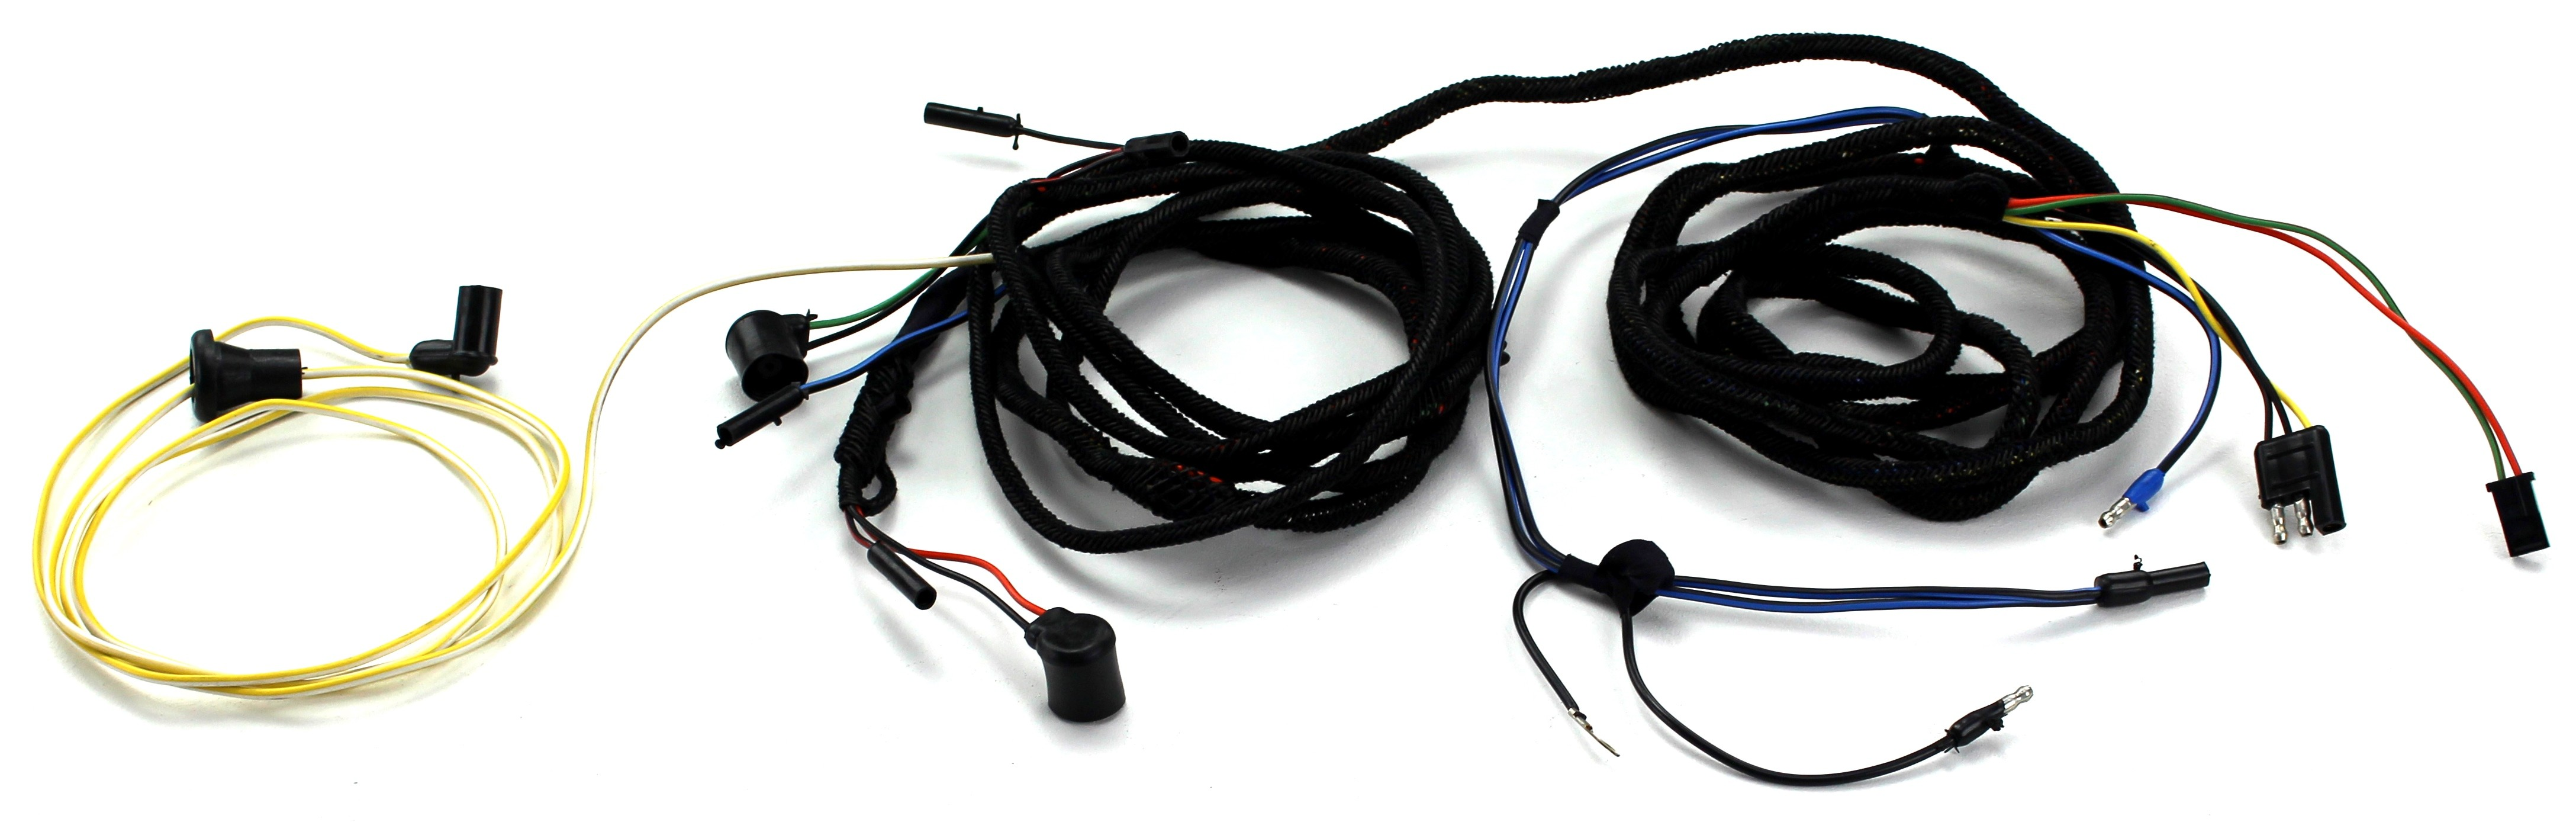 Tail Light Wiring Harness Fastback With Boot Sockets 1966 Alloy Metal Products